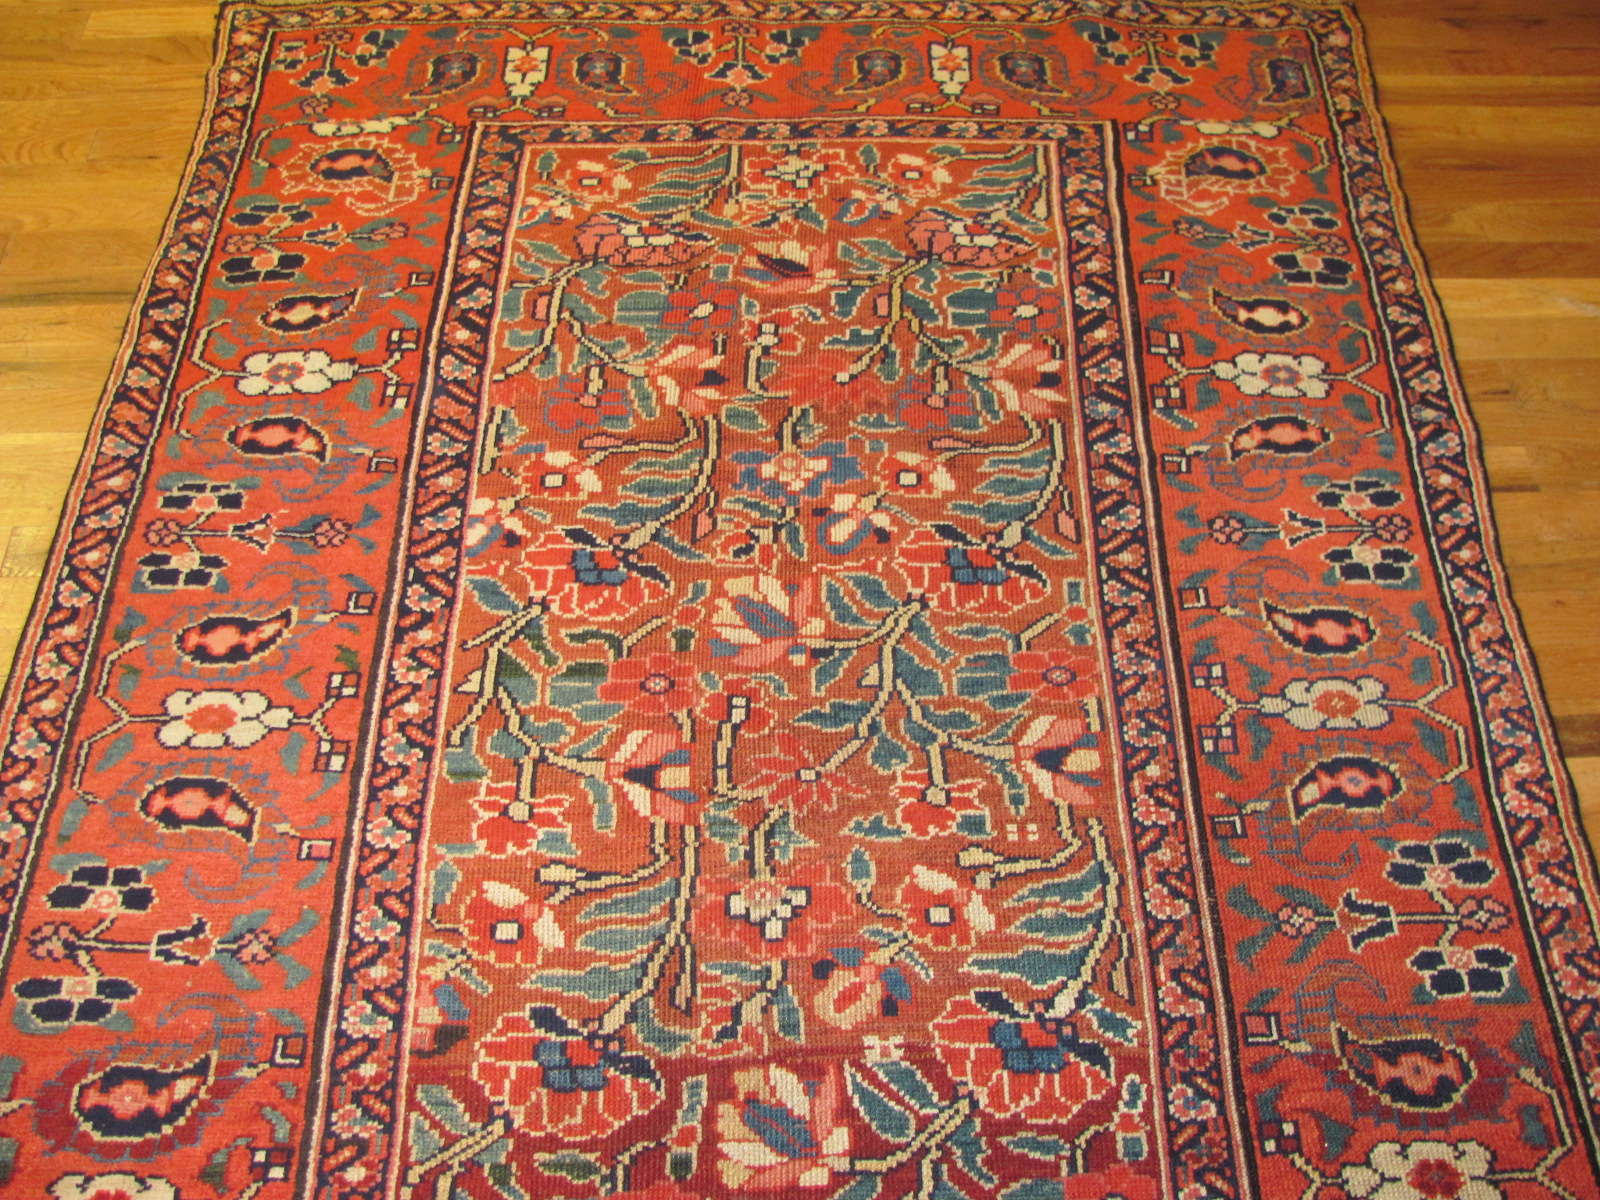 24458 antique persian kurd rug 4,5x10,8 -1